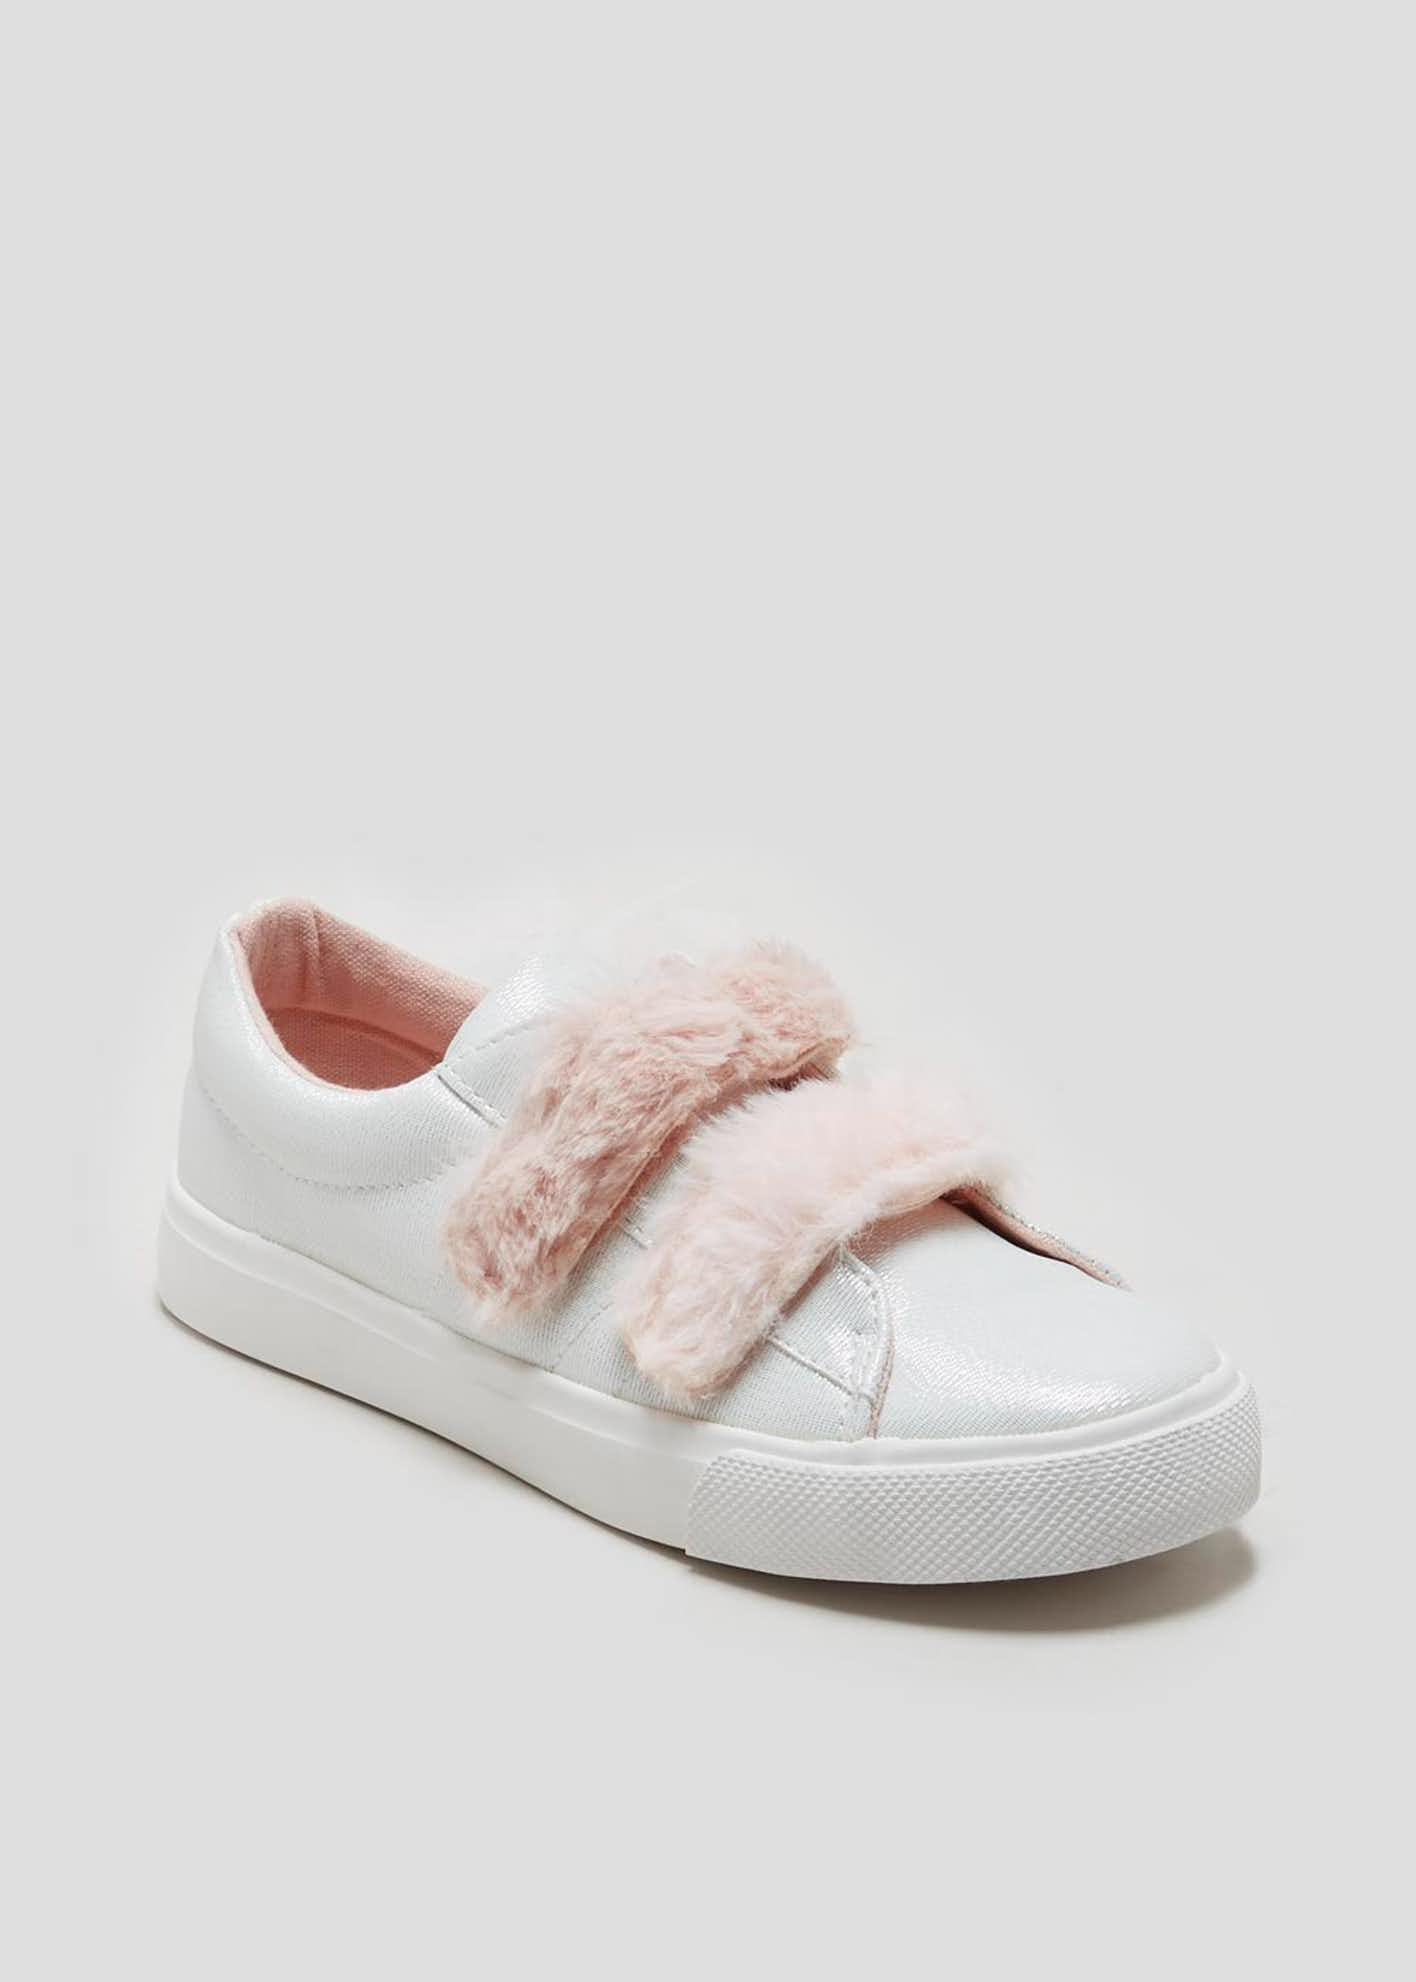 Girls Faux Fur Strap Canvas Pumps (Younger 10-Older 5)